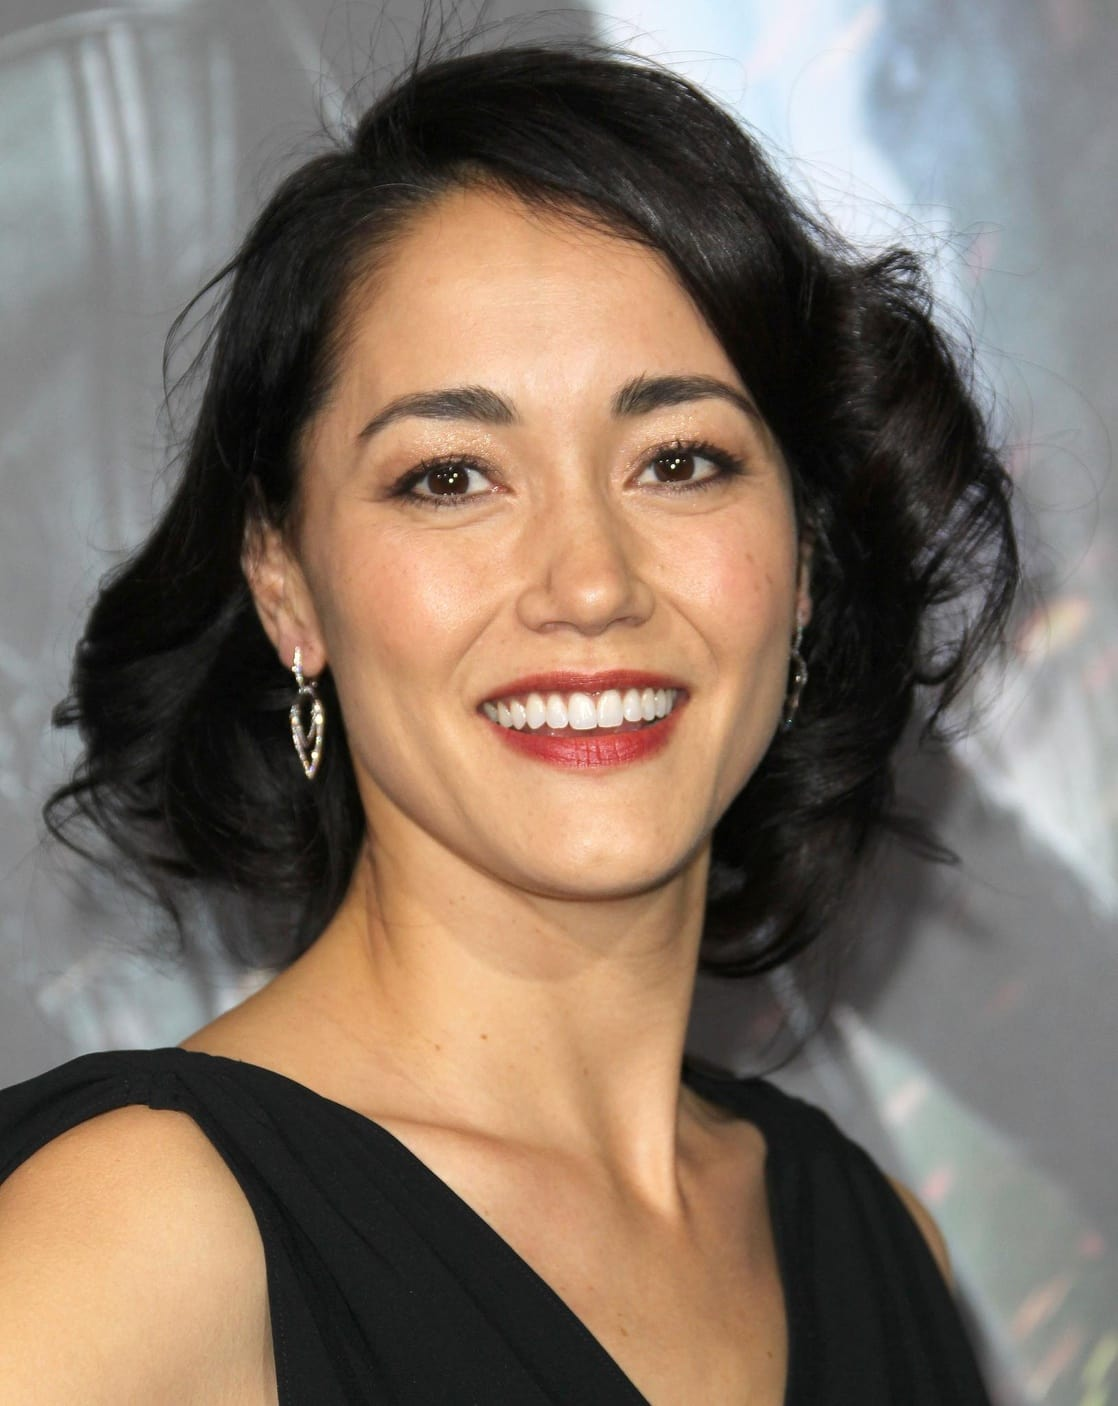 Hot Sandrine Holt nude (97 photos), Sexy, Leaked, Boobs, cleavage 2006